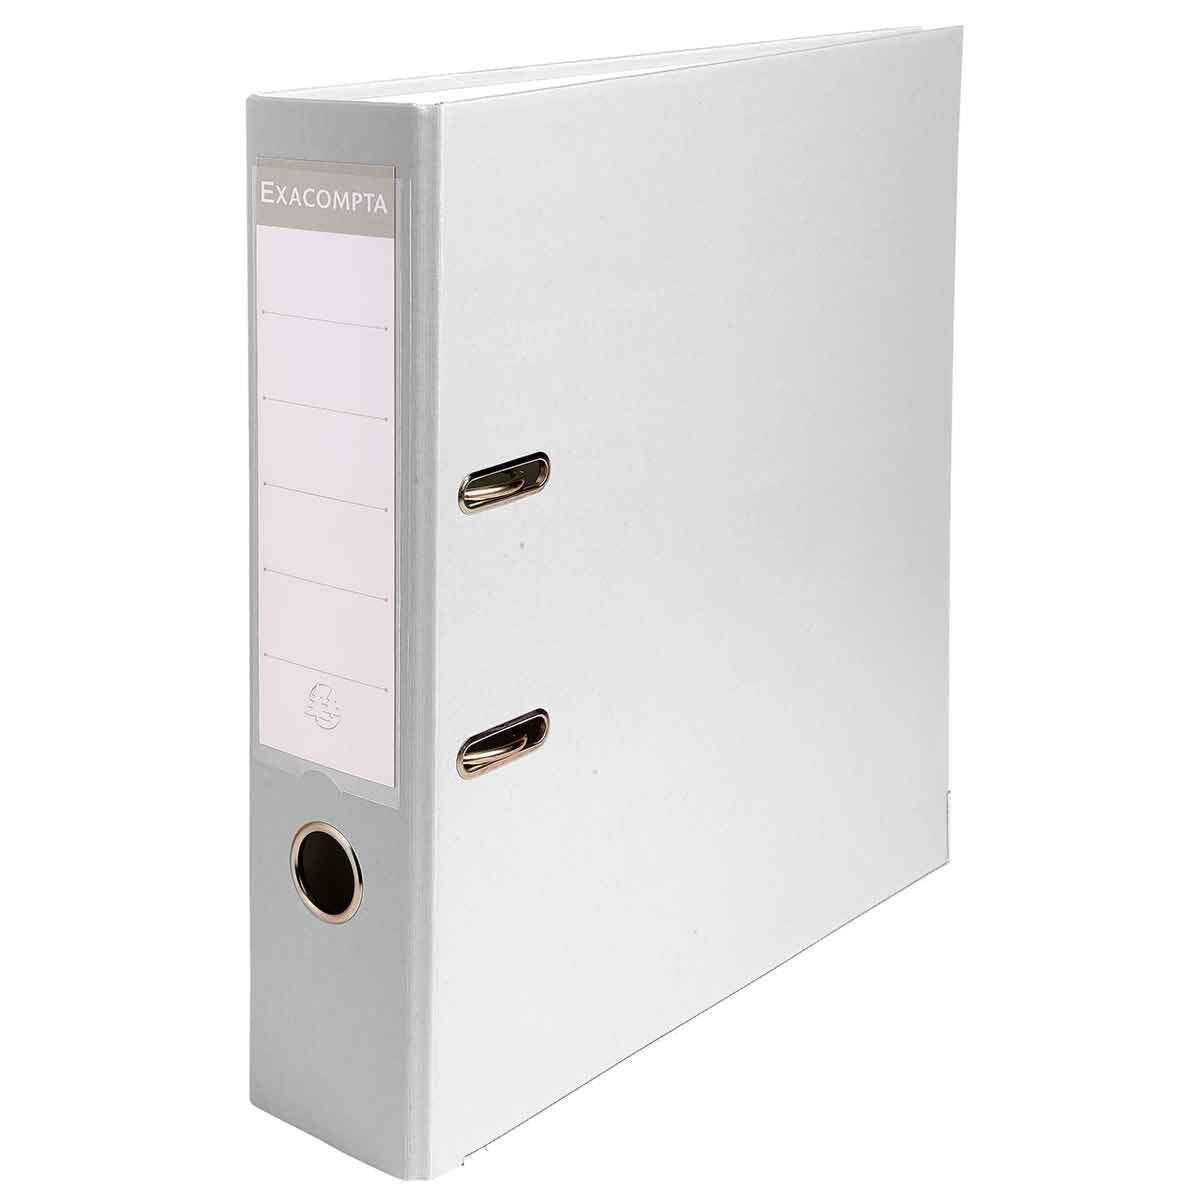 Exacompta Lever Arch File A4 80mm Pack of 20 White